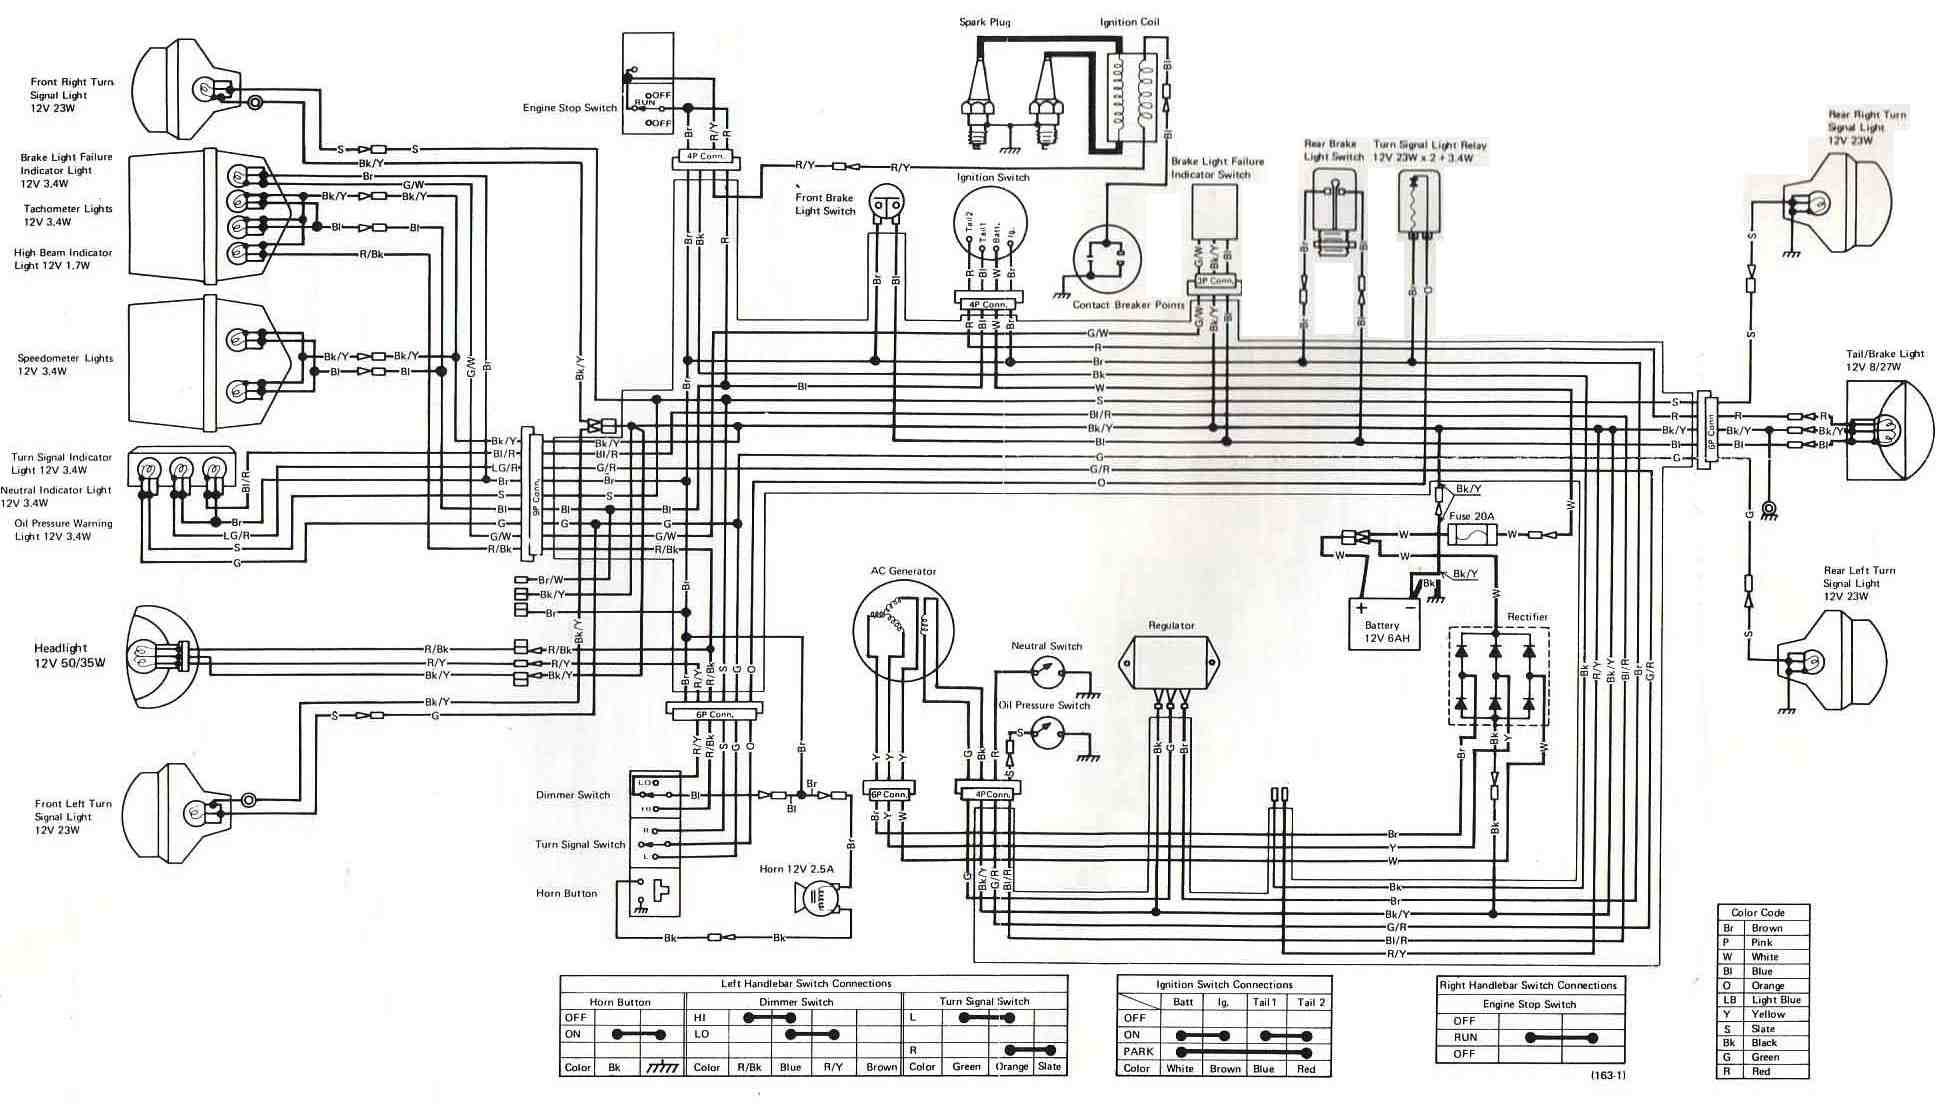 hight resolution of kawasaki 1100 zxi wiring diagram trusted wiring diagrams on kawasaki ultra 150 wiring diagram